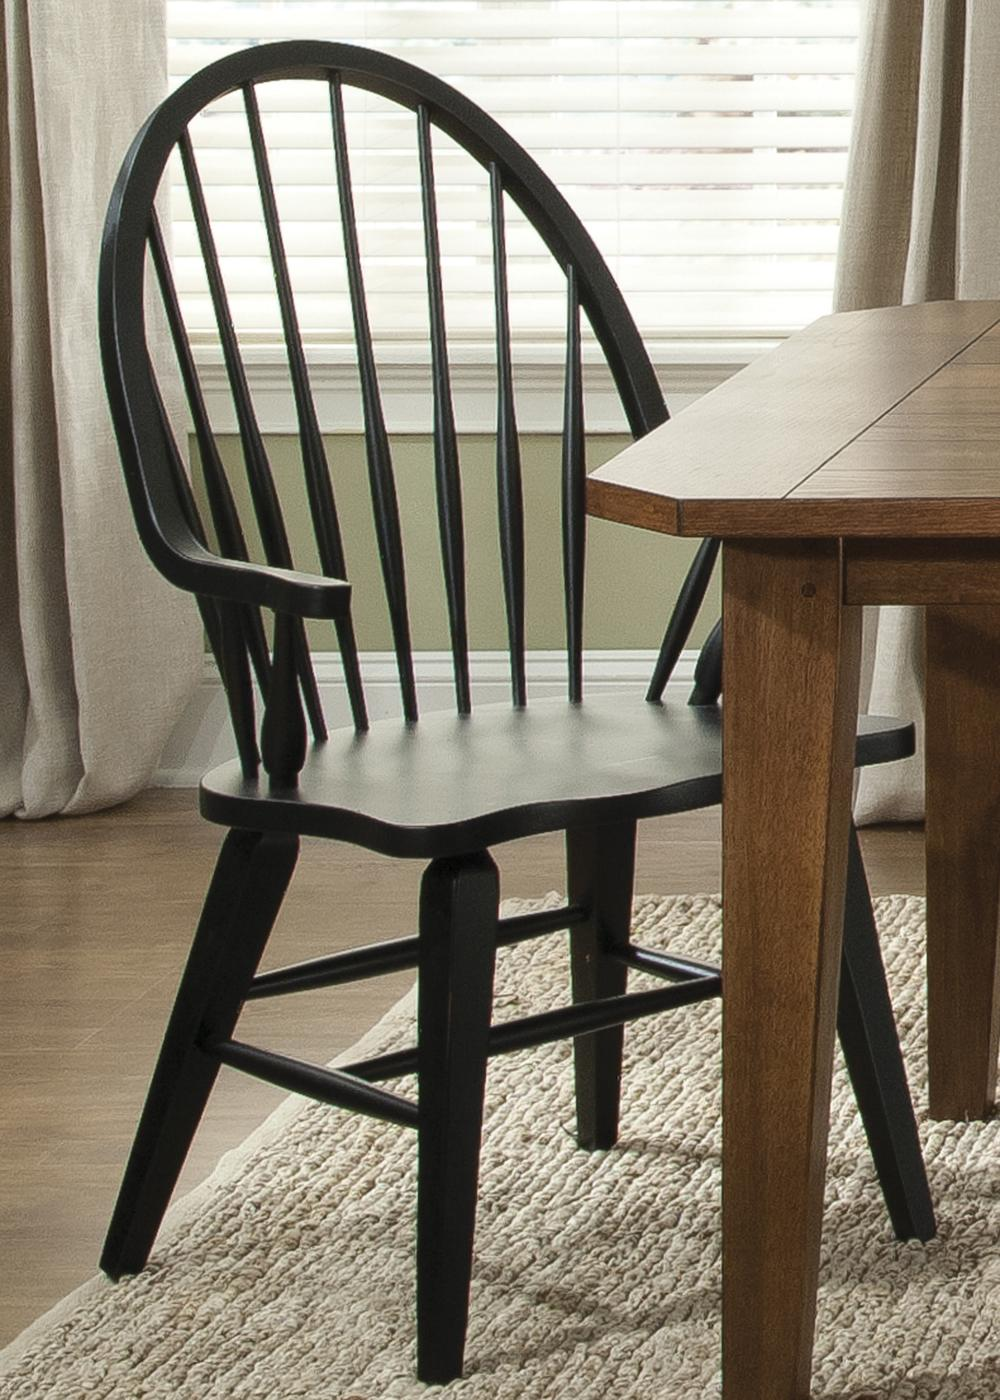 windsor chair with arms windsor back arm chair by liberty furniture wolf and 22157 | products%2Fliberty furniture%2Fcolor%2Fhearthstone 816253672 482 c1000a b0